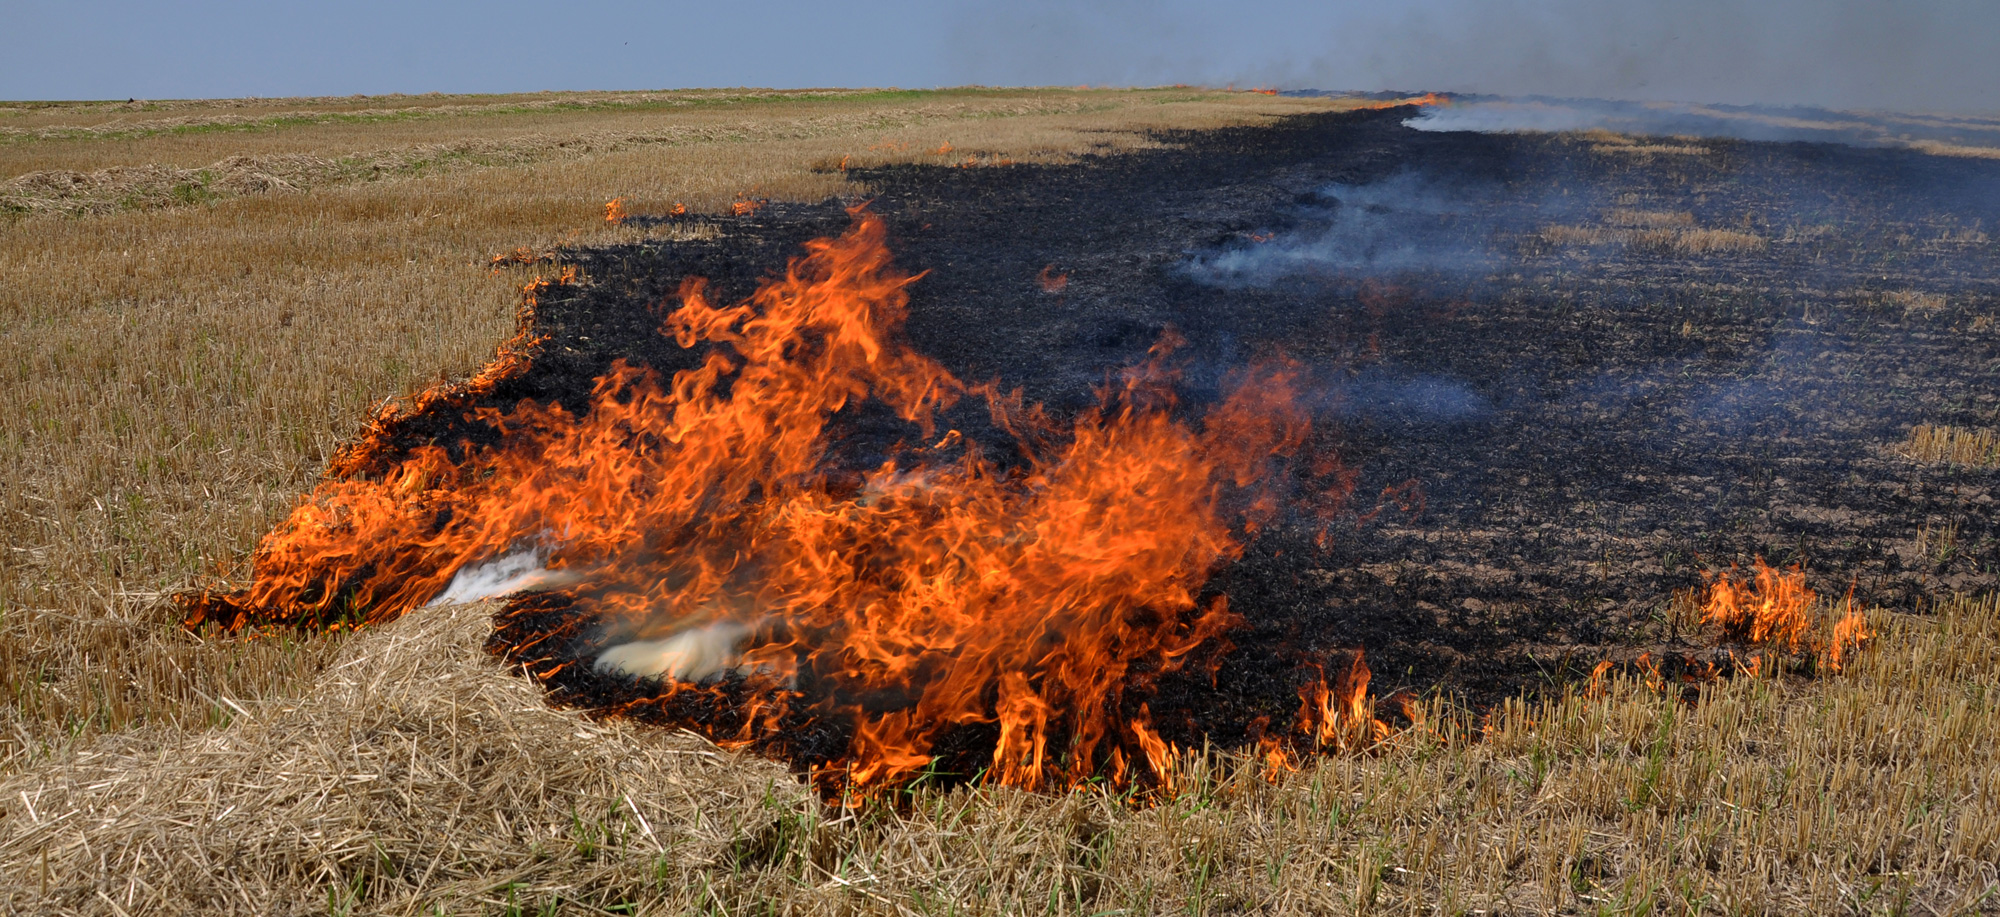 Burning of paddy stubble in fields, especially after kharif crop is harvested in October-November, is rampant across the state.